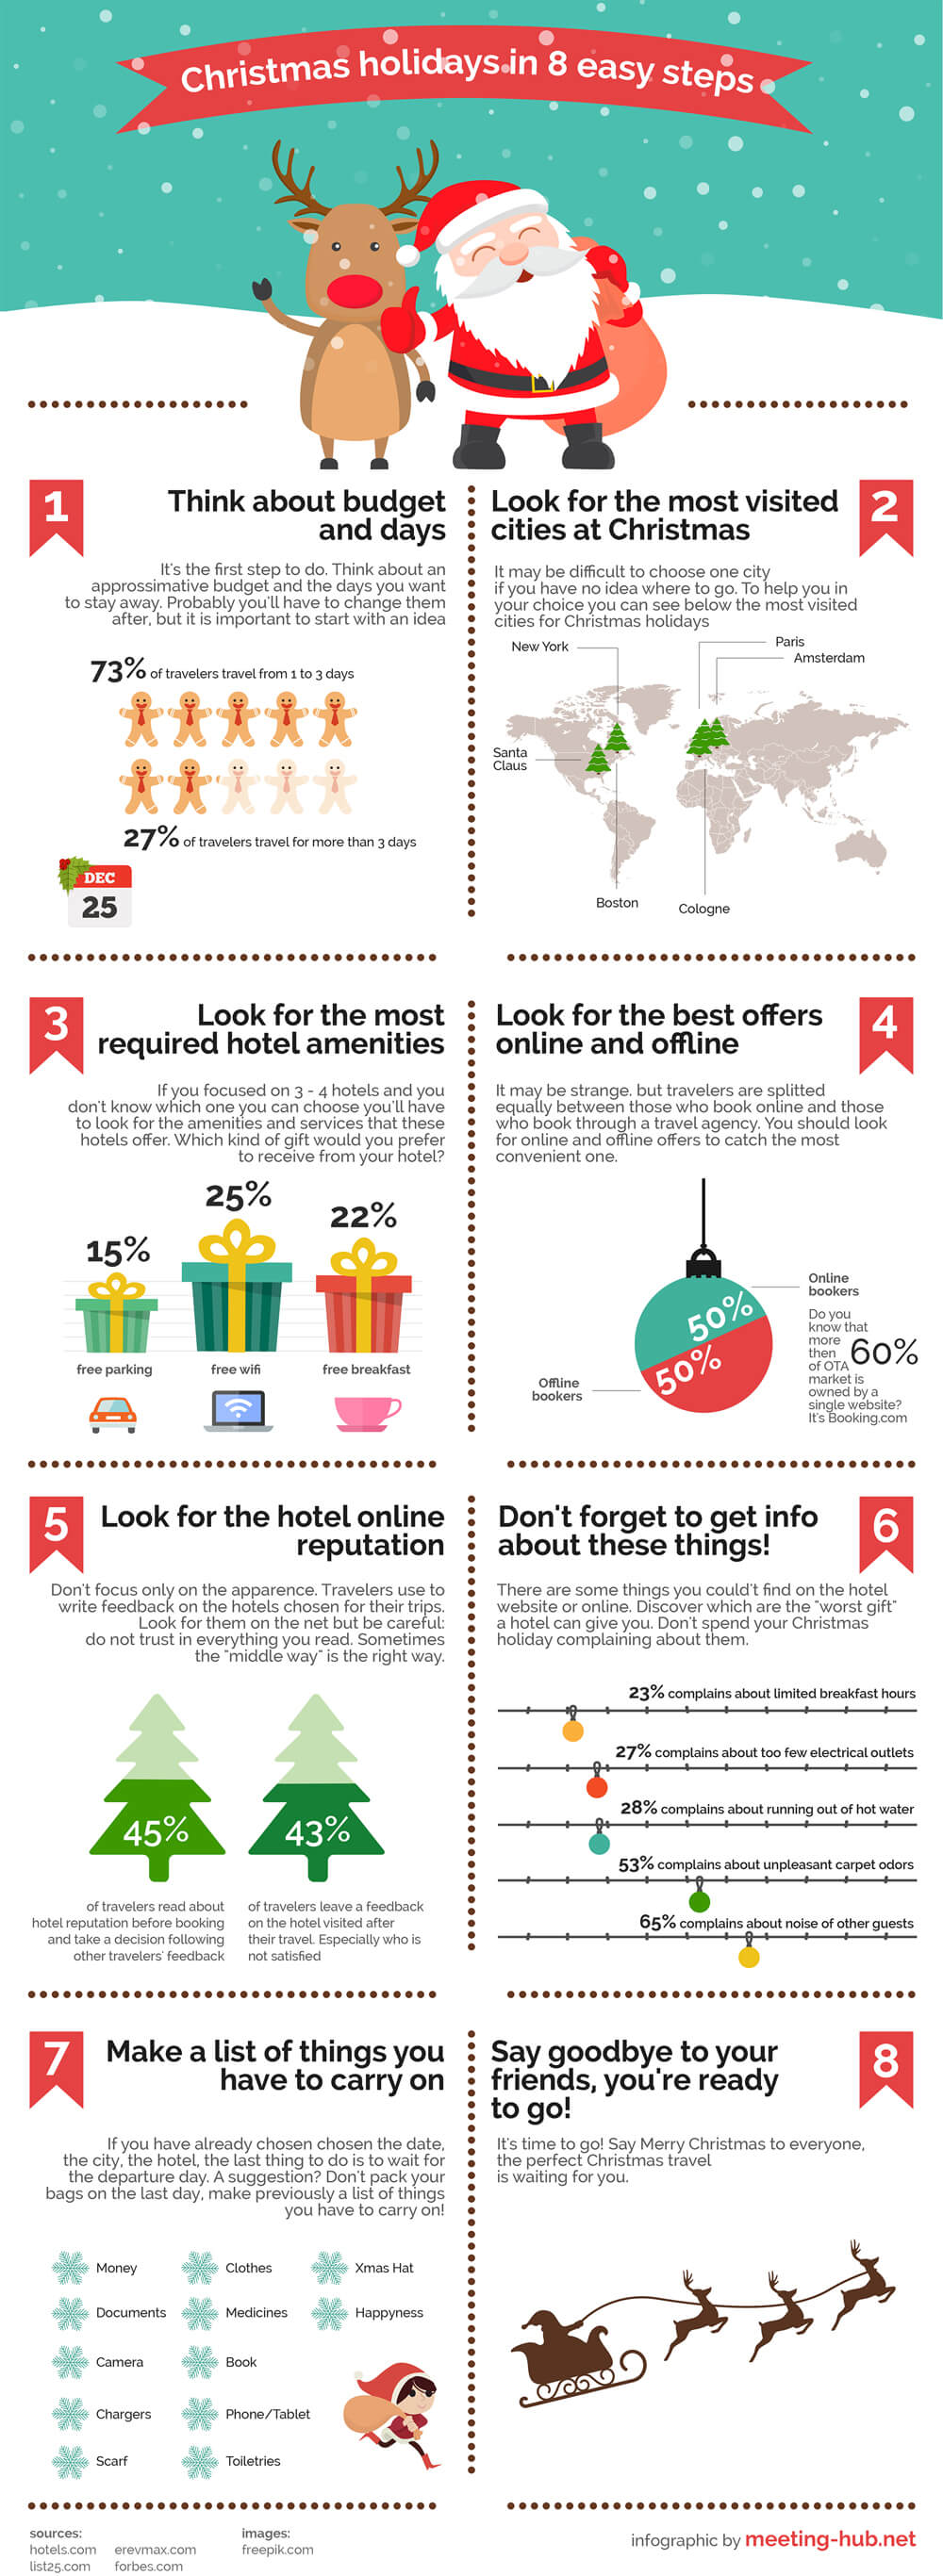 christmas-holidays-in-8-steps-infographic